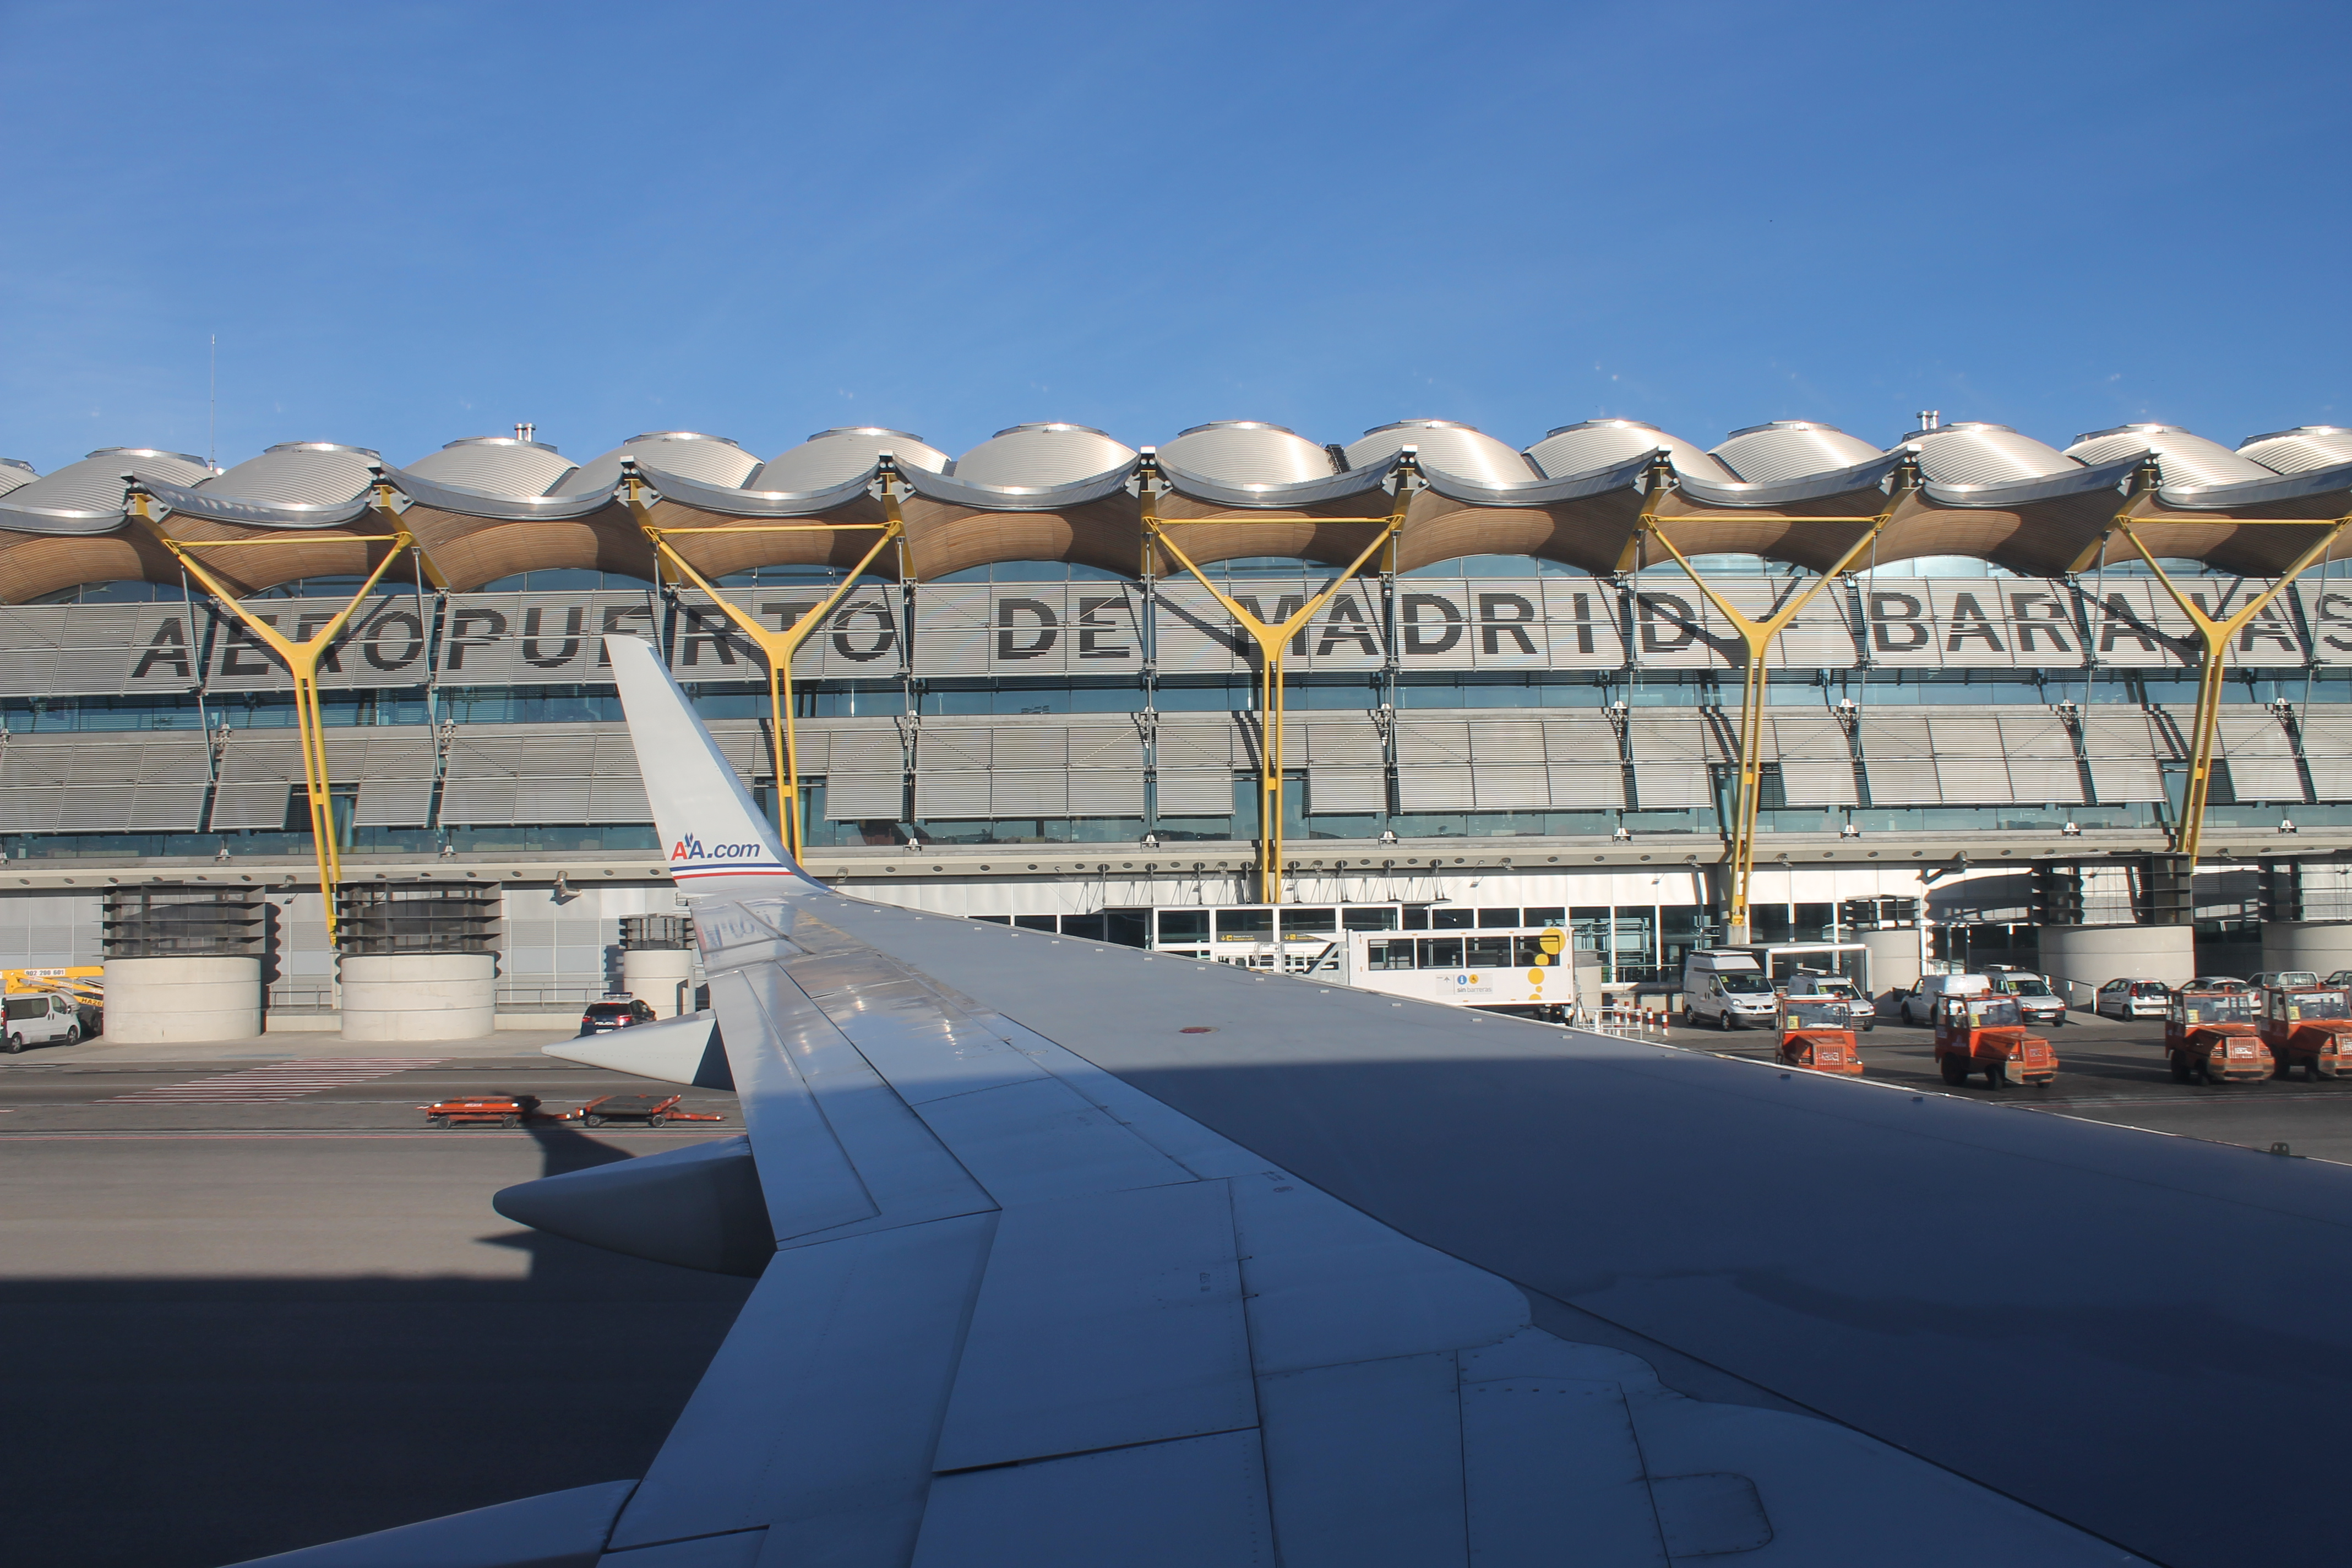 Is There A Hotel In Madrid Airport